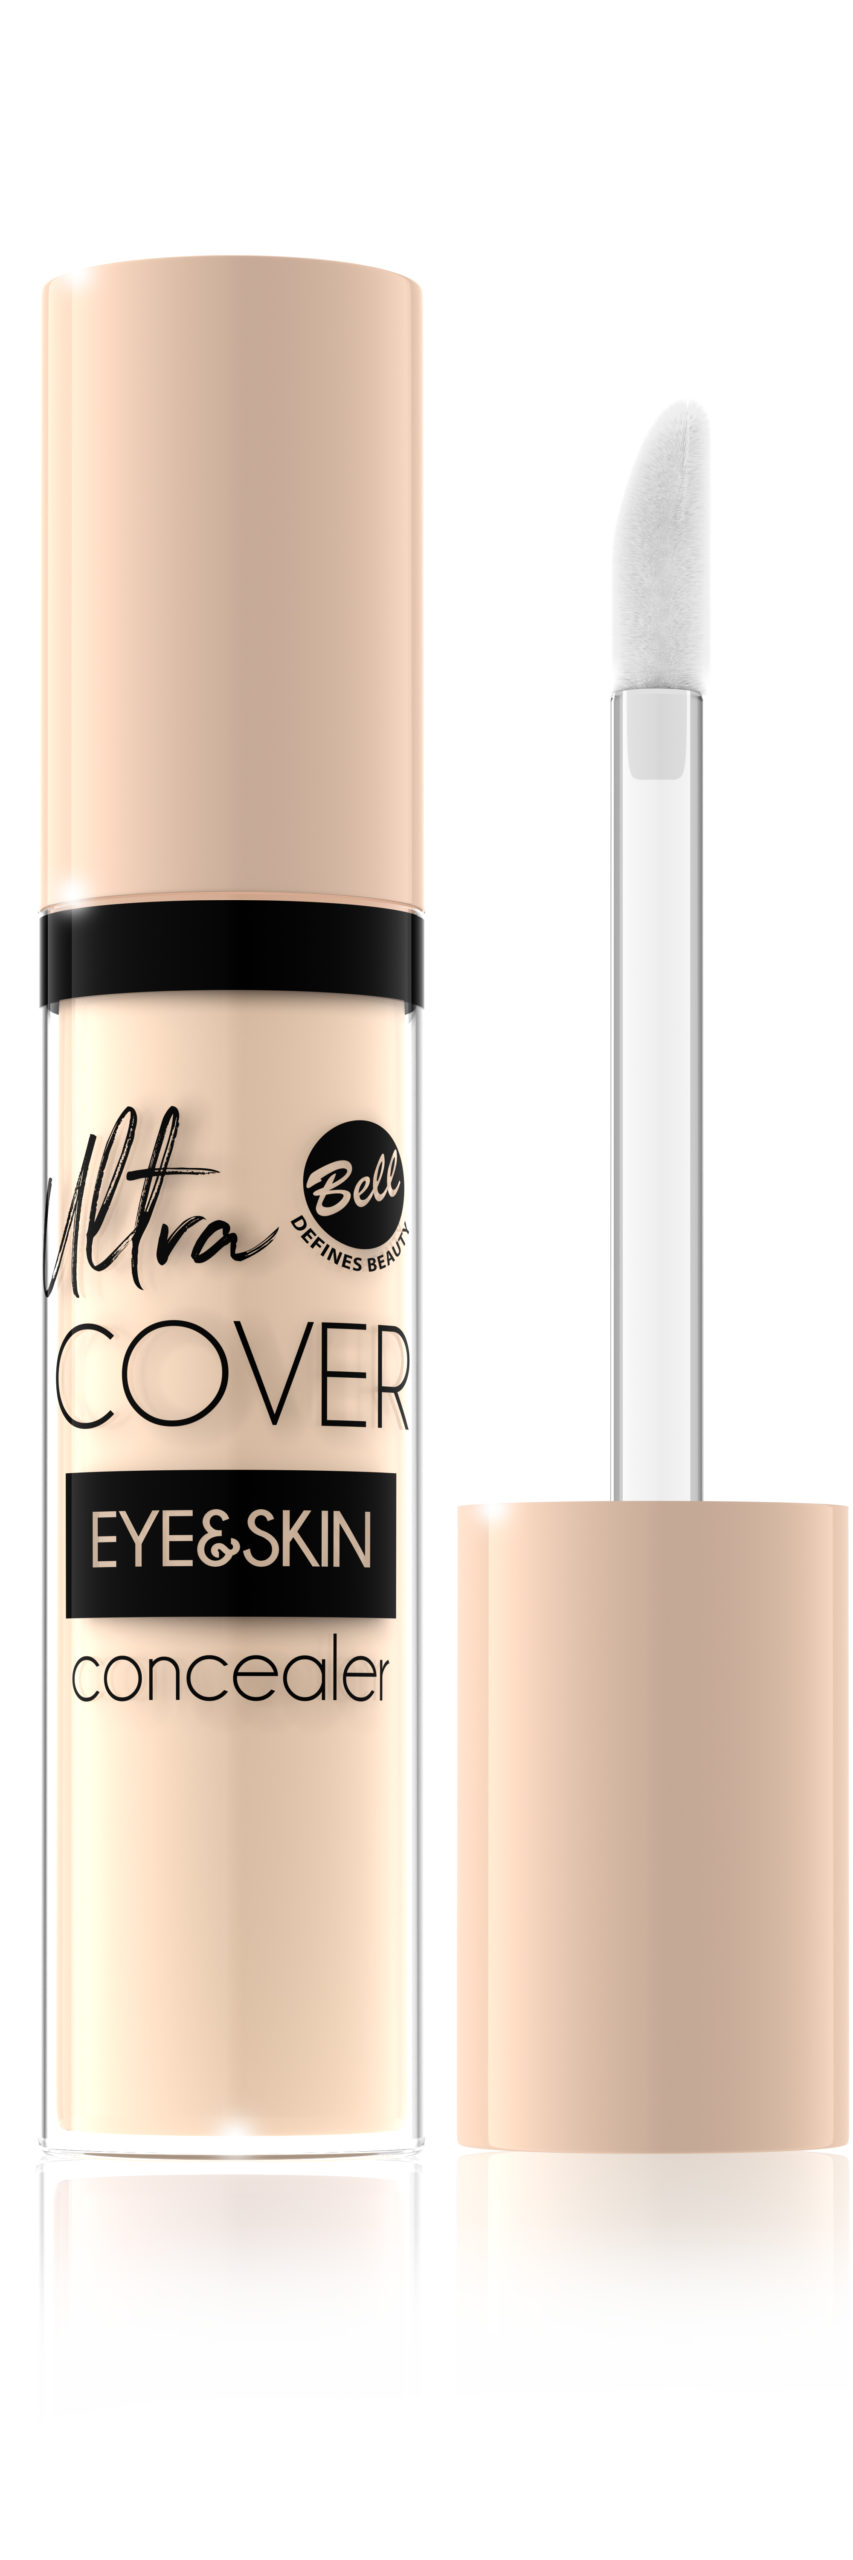 Ultra Cover Eye&Skin Concealer